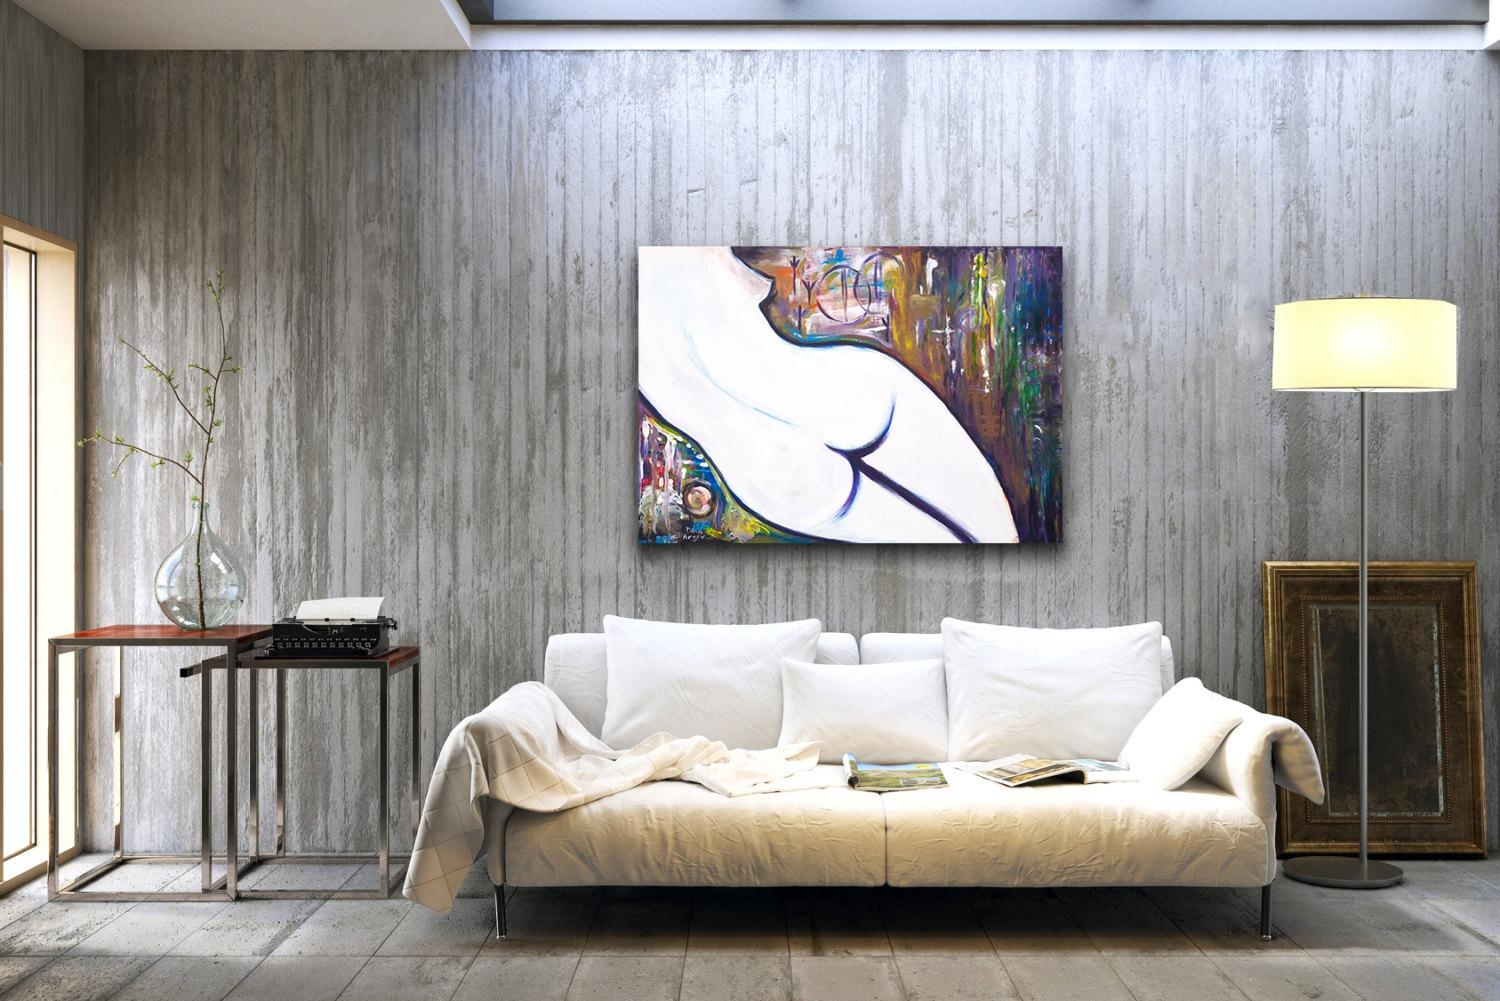 Nude Painting Abstract Female Nudity Woman Painting With Regard To Sensual Wall Art (View 17 of 20)